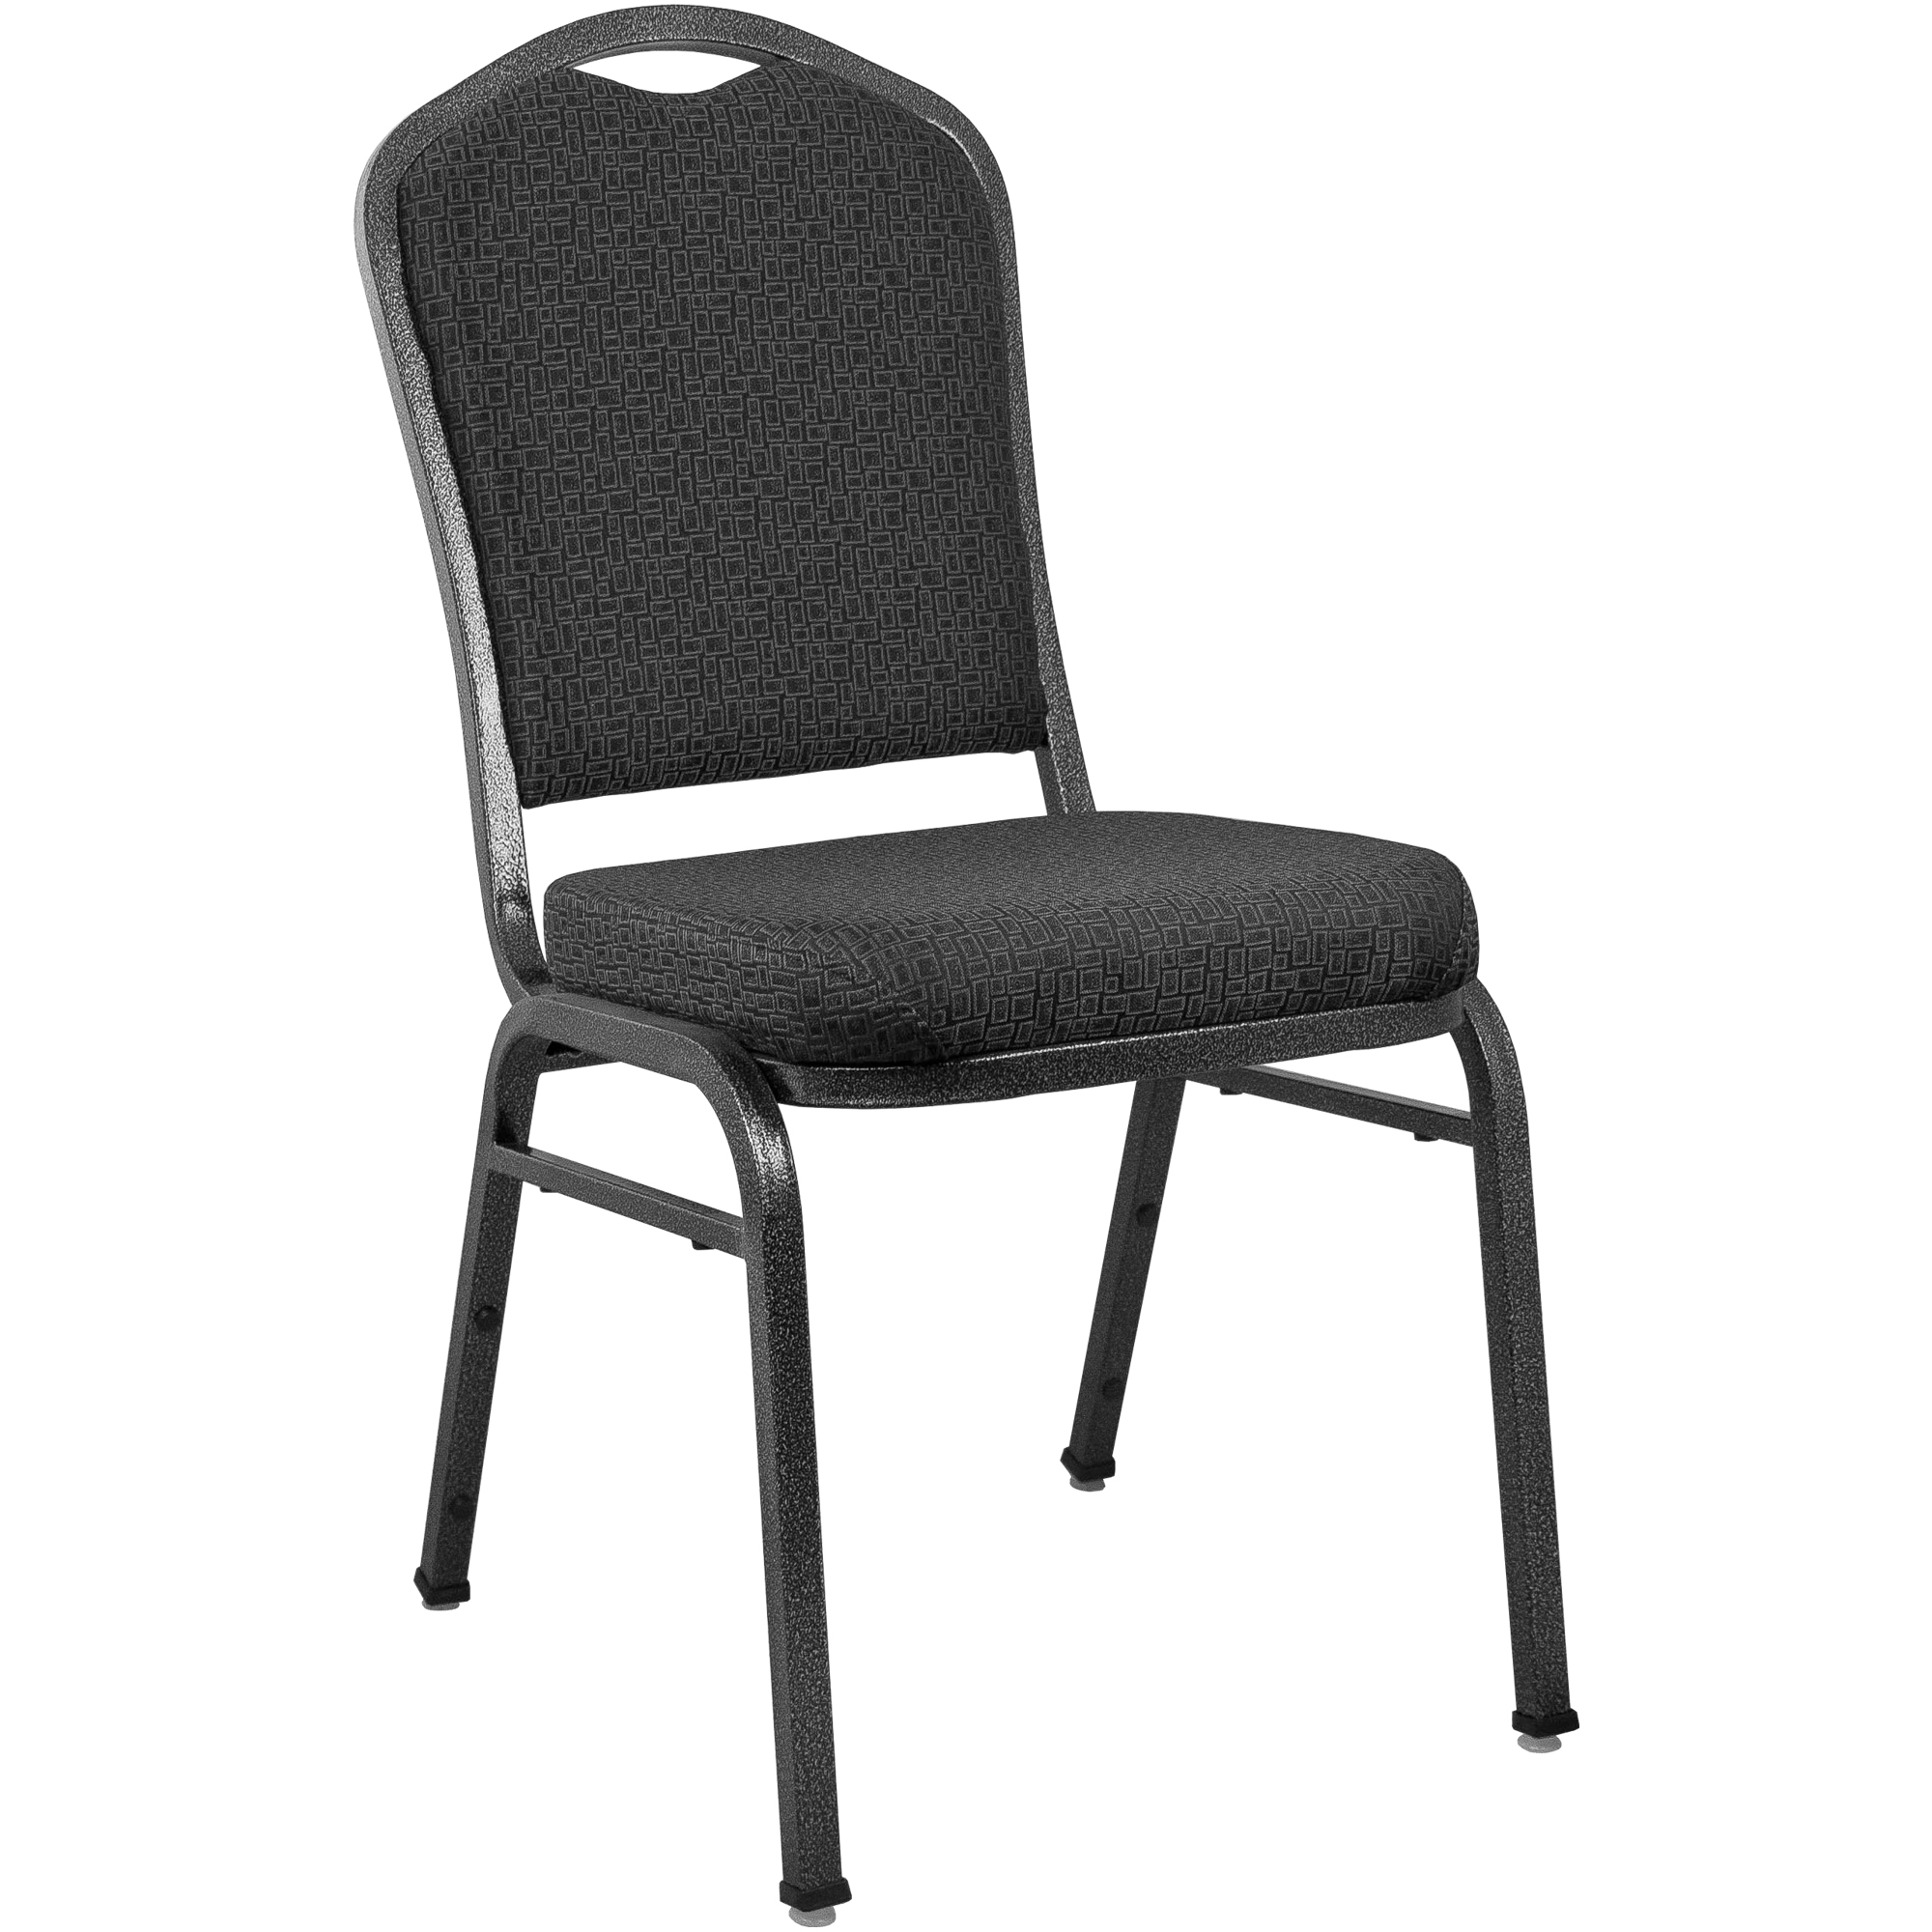 #57 -  Crown Back Banquet Chair with Black Patterned Fabric and Silver Vein